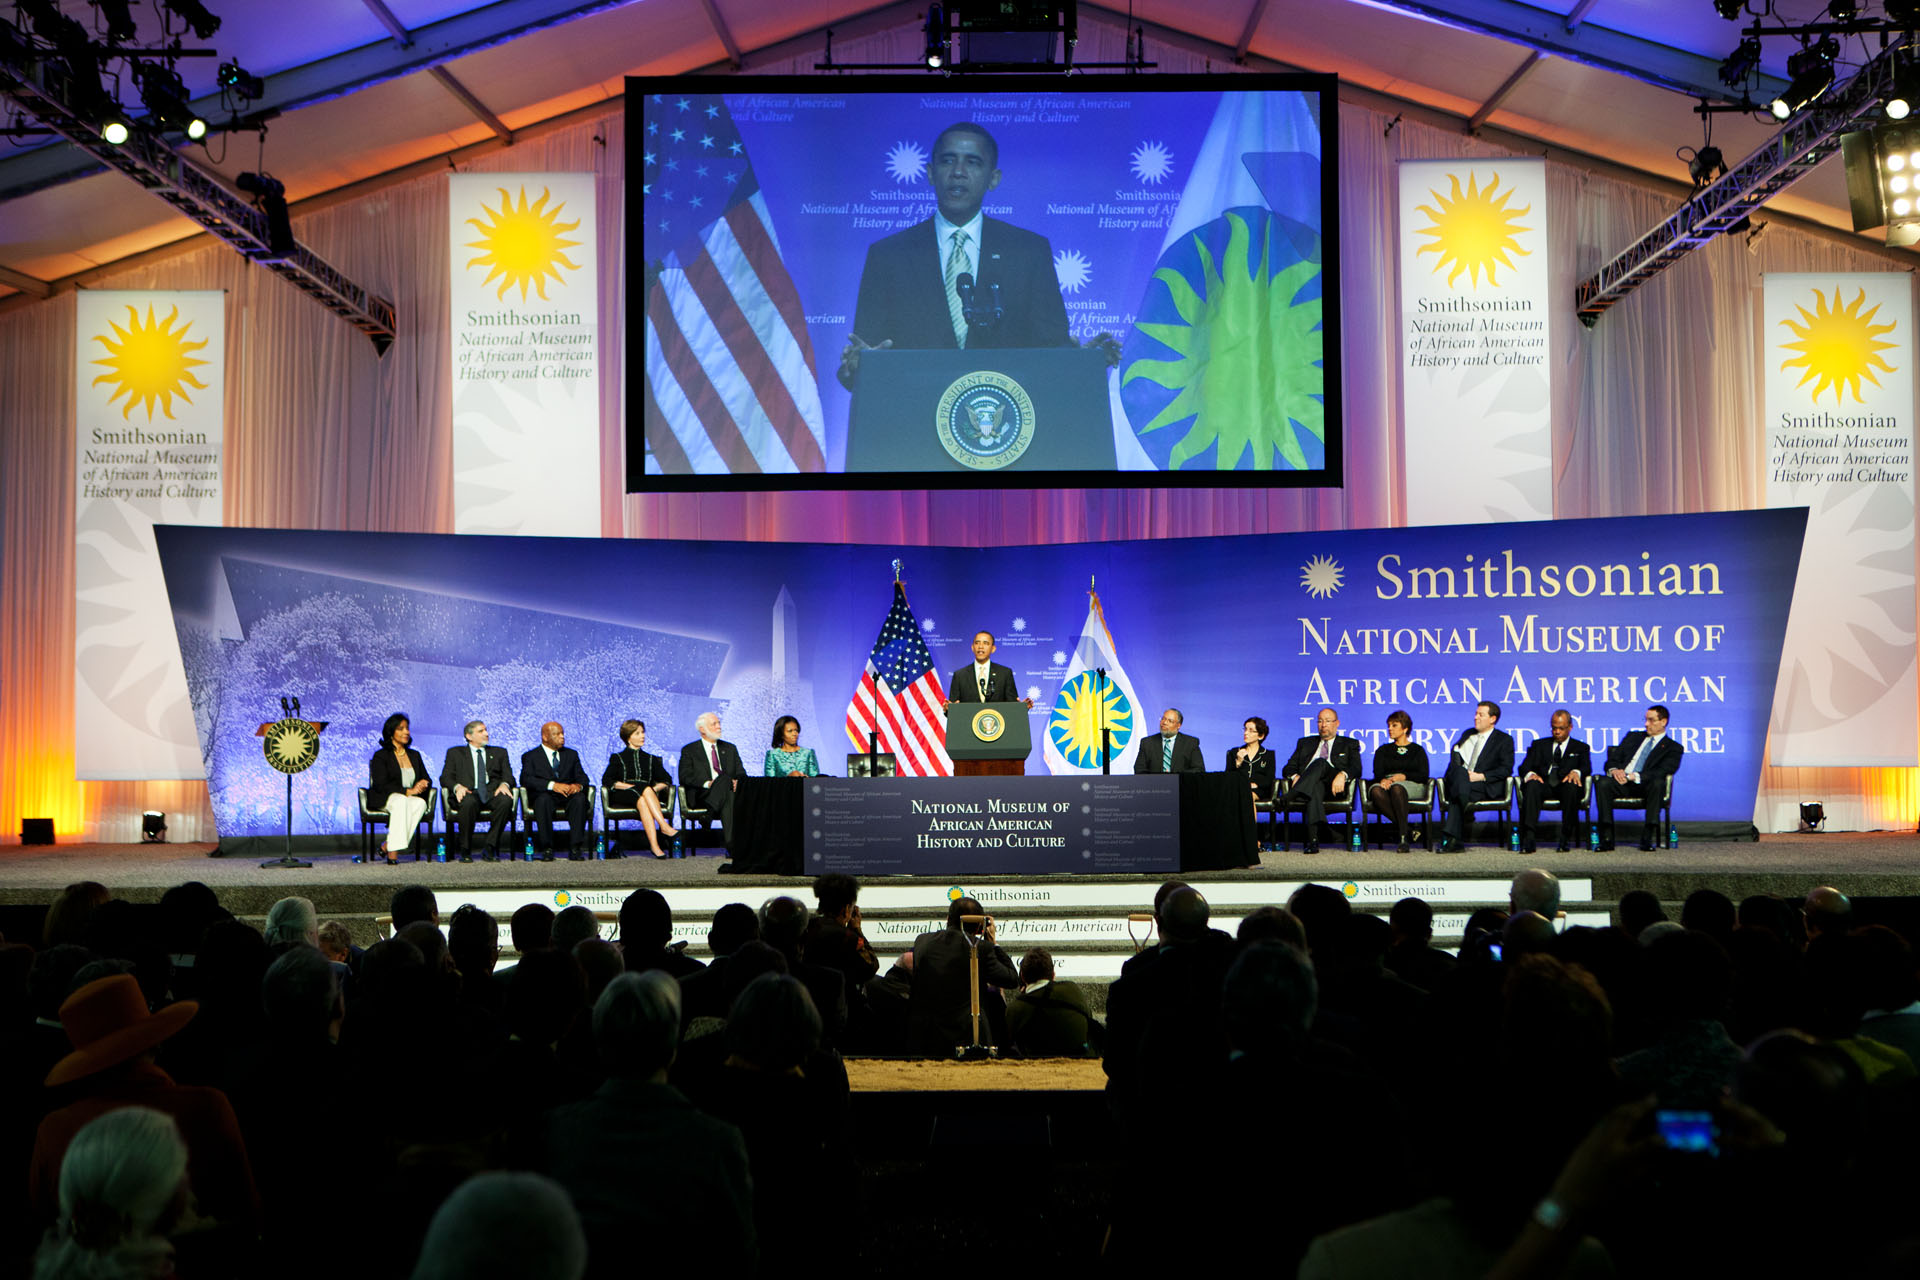 President Obama delivers remarks during the groundbreaking ceremony for the Smithsonian National Museum of African American History and Culture (February 22, 2012)